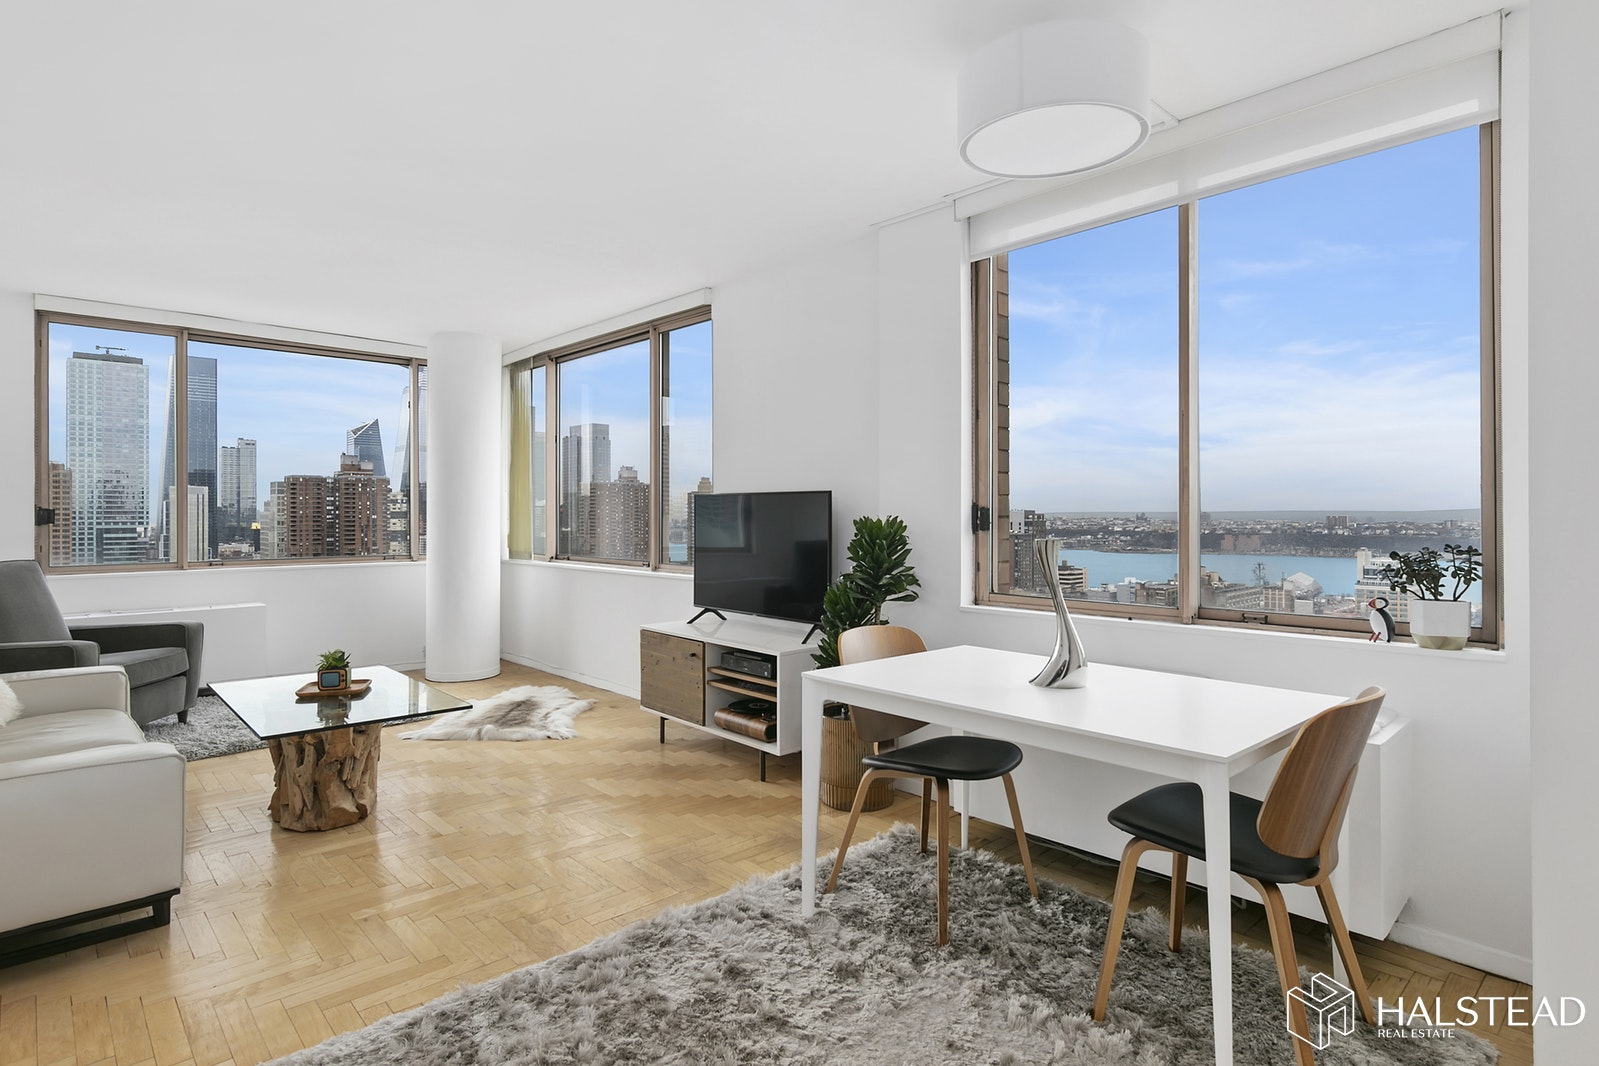 Open House By Appointment Only - June 28 from 2pm-3pm. Please inquire within to confirm your appointment.Views, sun and light. You can bet on all three in this high floor corner split two bedroom with wide open views to the south and west featuring Hudson Yards and the Hudson River. The pass-through renovated kitchen sets the high floor E line apart starting on the 32nd floor with the most efficient layout (lower E line floors have a different layout with galley kitchens situated at entrance). The sleek and smart kitchen design boasts white cabinetry extended to the ceiling for additional storage, stainless steel appliances and pantry. The grand living room provides the perfect backdrop to savor the views with a practical feel to accommodate your natural living area and separate dining area plus a wall of built-in closets. The king size master bedroom presents river views from bed, a practical sitting area or home office and large walk-in closet. The en suite marble master bathroom has been updated with lively colors and can be easily customized to your taste. The second bedroom offers ideal privacy with stunning southern views adjacent to the second bathroom outfitted with washer/dryer. Pet-friendly Worldwide Plaza is a full-service condominium with a plethora of amenities including the full-time doormen, live-in resident manager, private courtyard, multiple laundry rooms, onsite Elite New York Sports Club (25-meter saltwater pool, metabolic studio, and custom juice bar), onsite parking garage and private storage. Idyllic Midtown West location near Central Park, Hudson River Greenway, the theater district, Lincoln Center, Rockefeller Center and unlimited dining and shopping options. Convenient public transportation options include the C, E, 1, W, N, R, B, D, F and M subway lines and cross-town buses. Pied-a-terres and investors welcome. Real estate taxes displayed may be reduced by 17.5% if purchasing as your primary residence (Consult your CPA).